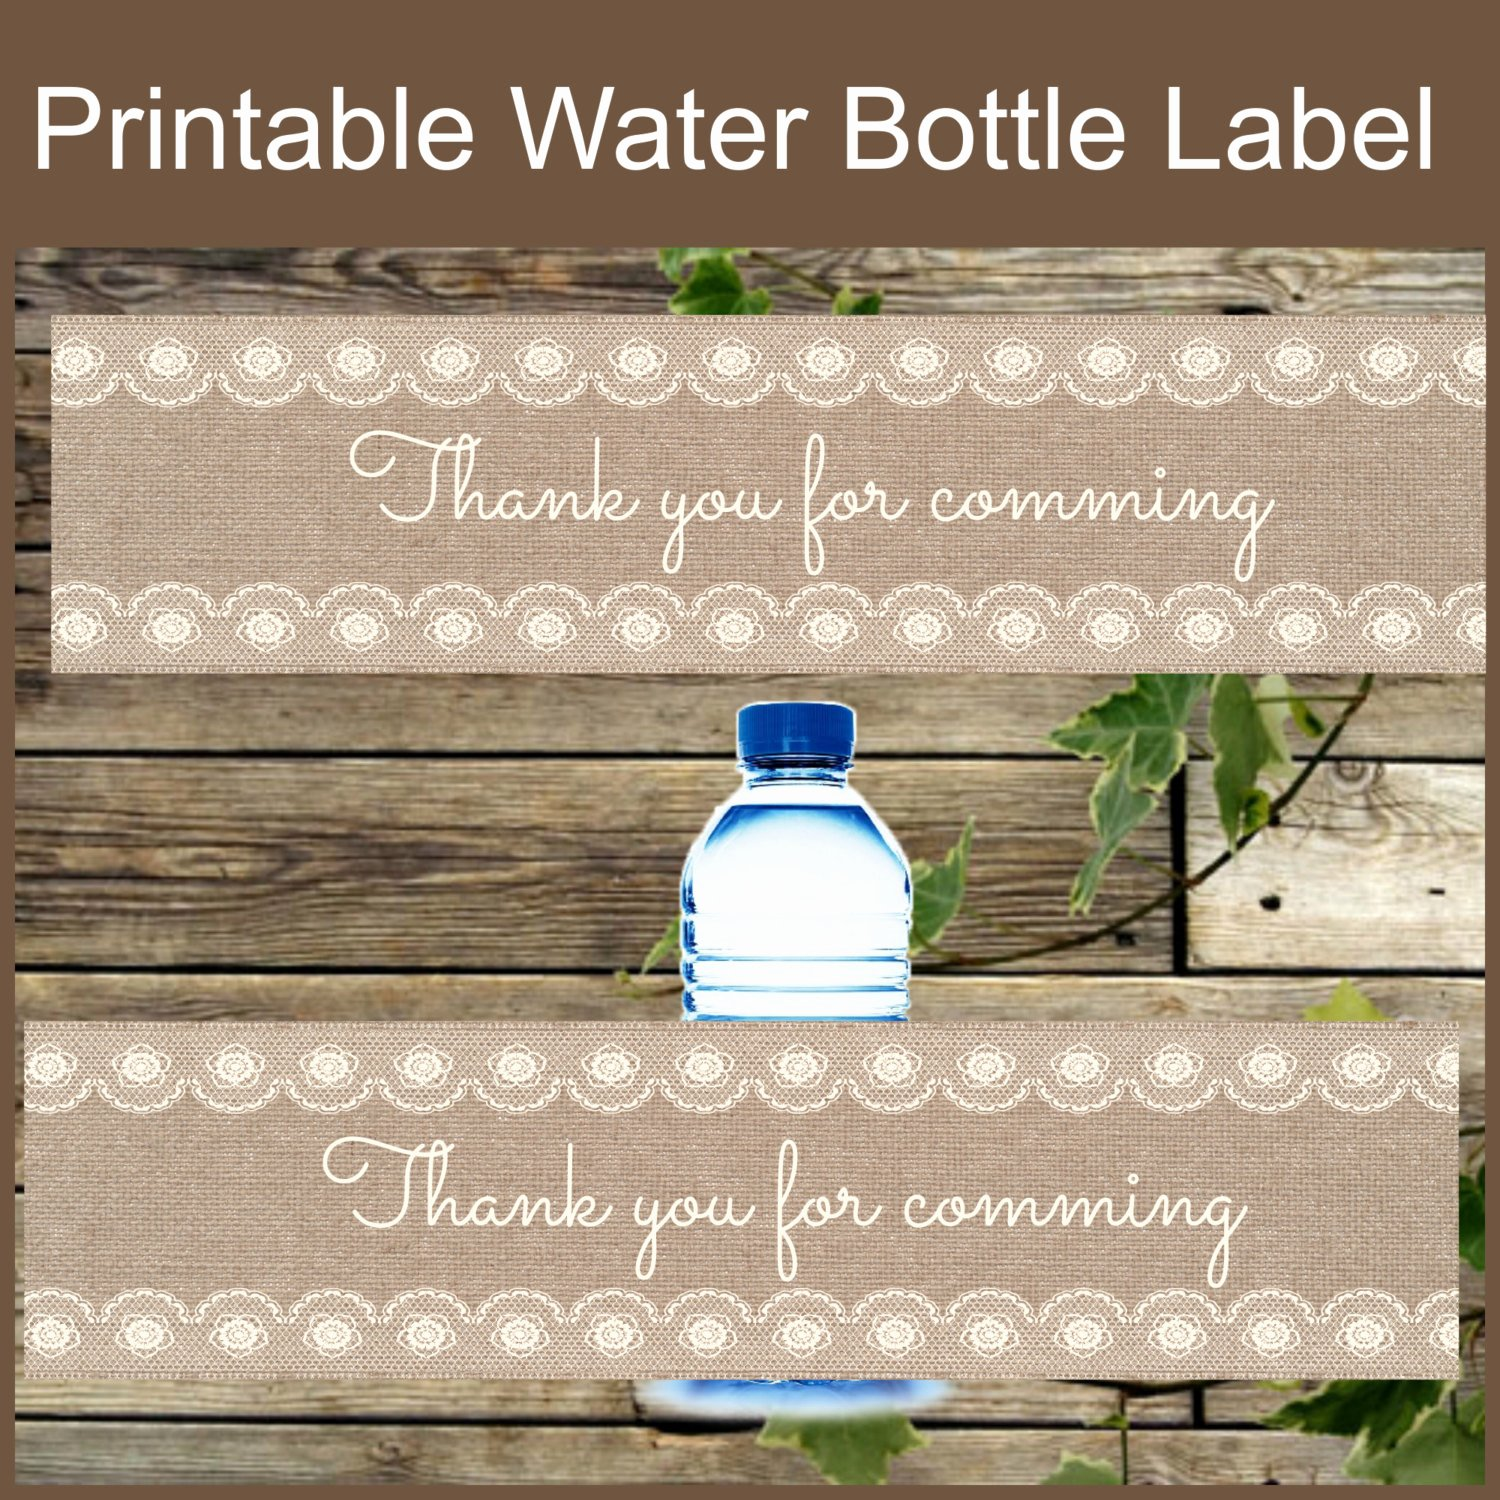 Diy Water Bottle Label Template New Burlap and Lace Water Bottle Label Diy Instant by isidesigns